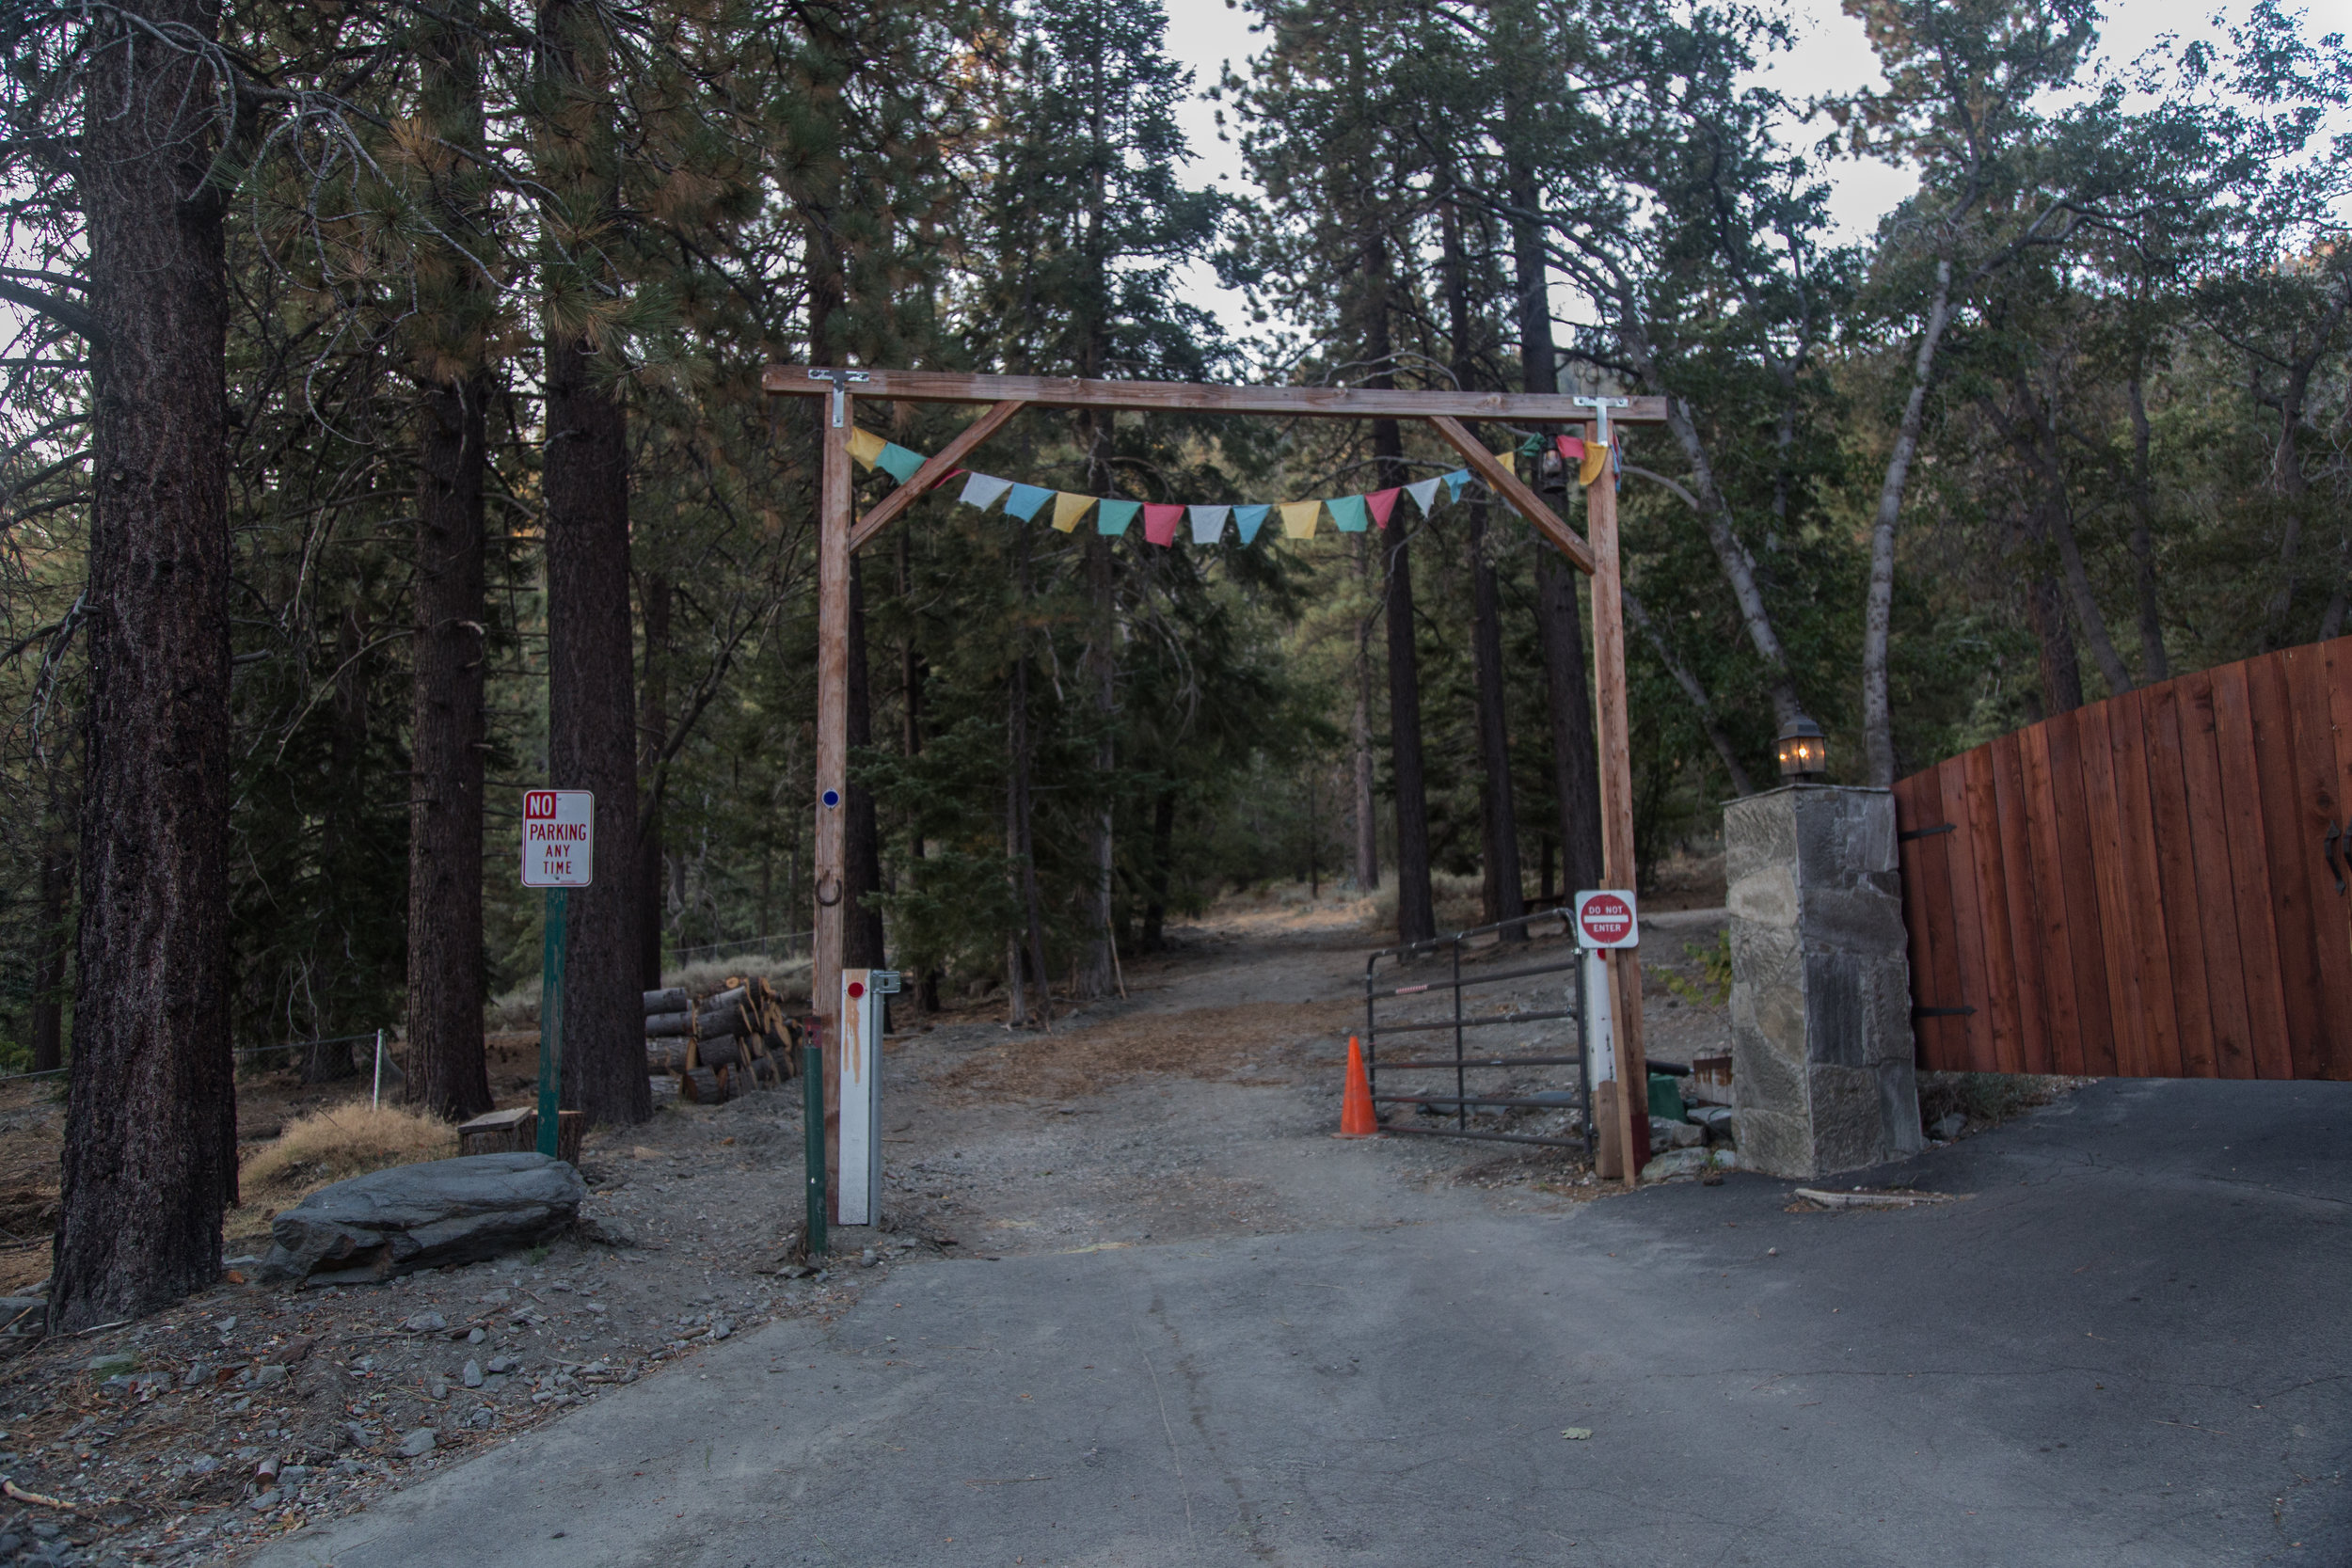 Entrance leading to the trailhead.